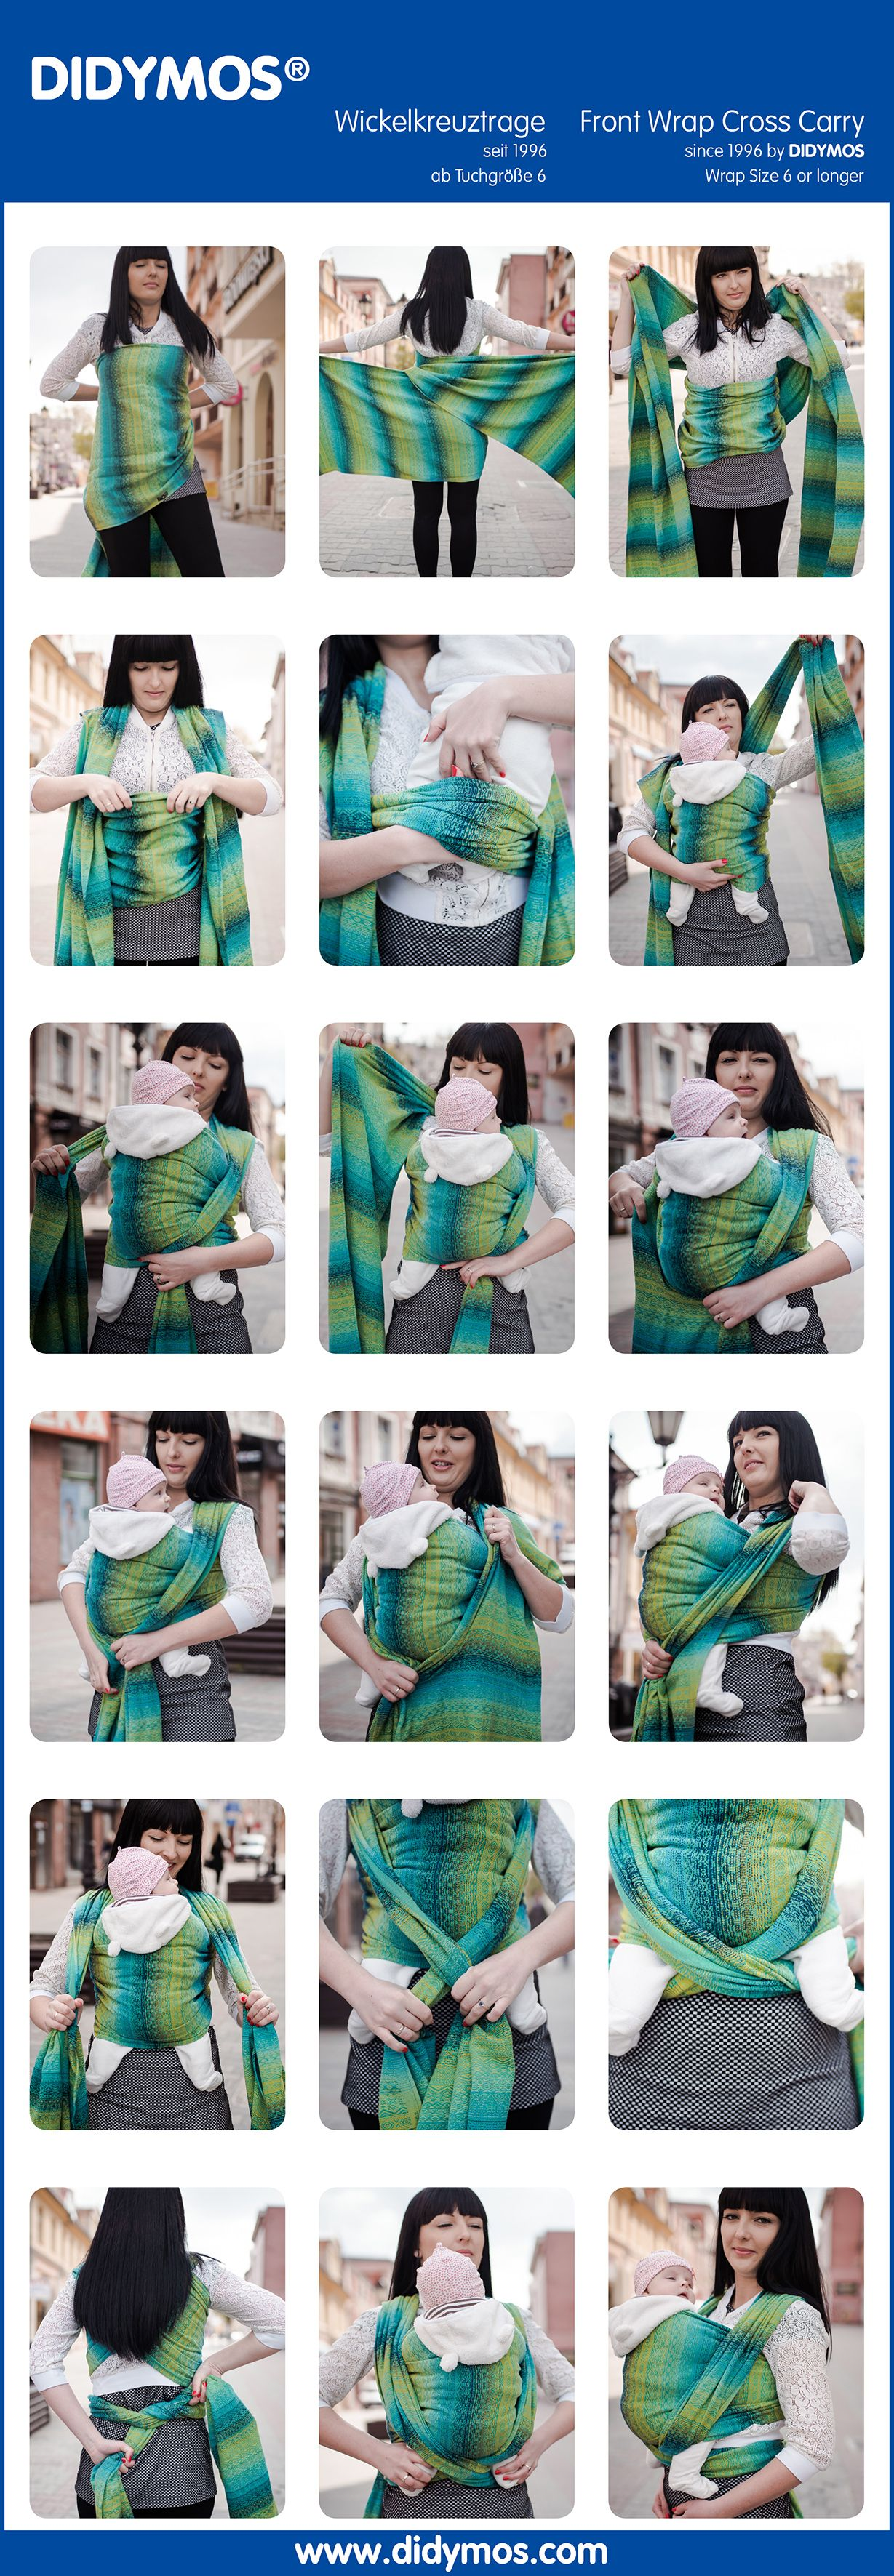 DIDYMOS FWCC - Front Wrap Cross Carry, first shown 1996 with glw, after DIDYMOS Sizing system from size 1-12